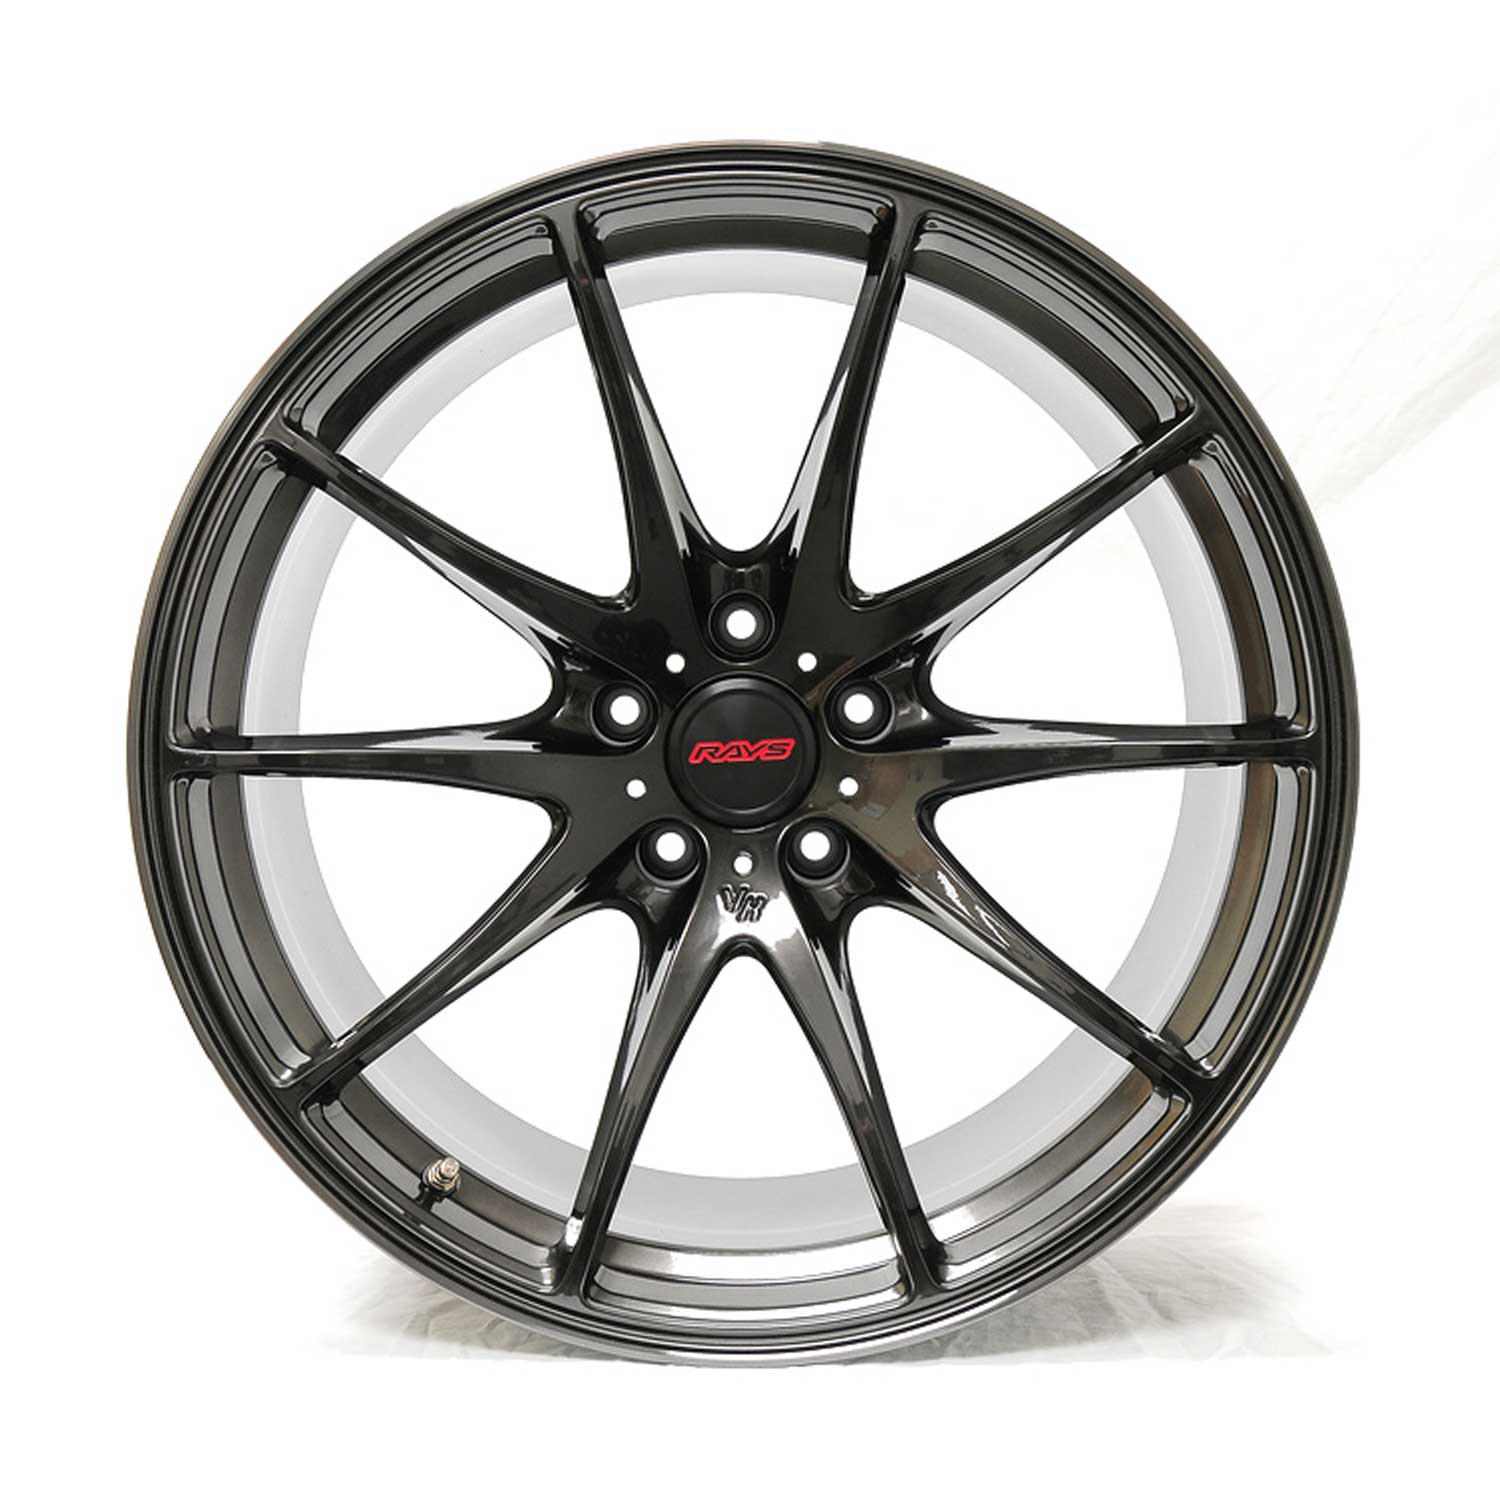 MAPerformance - Volk Racing G25 Edge